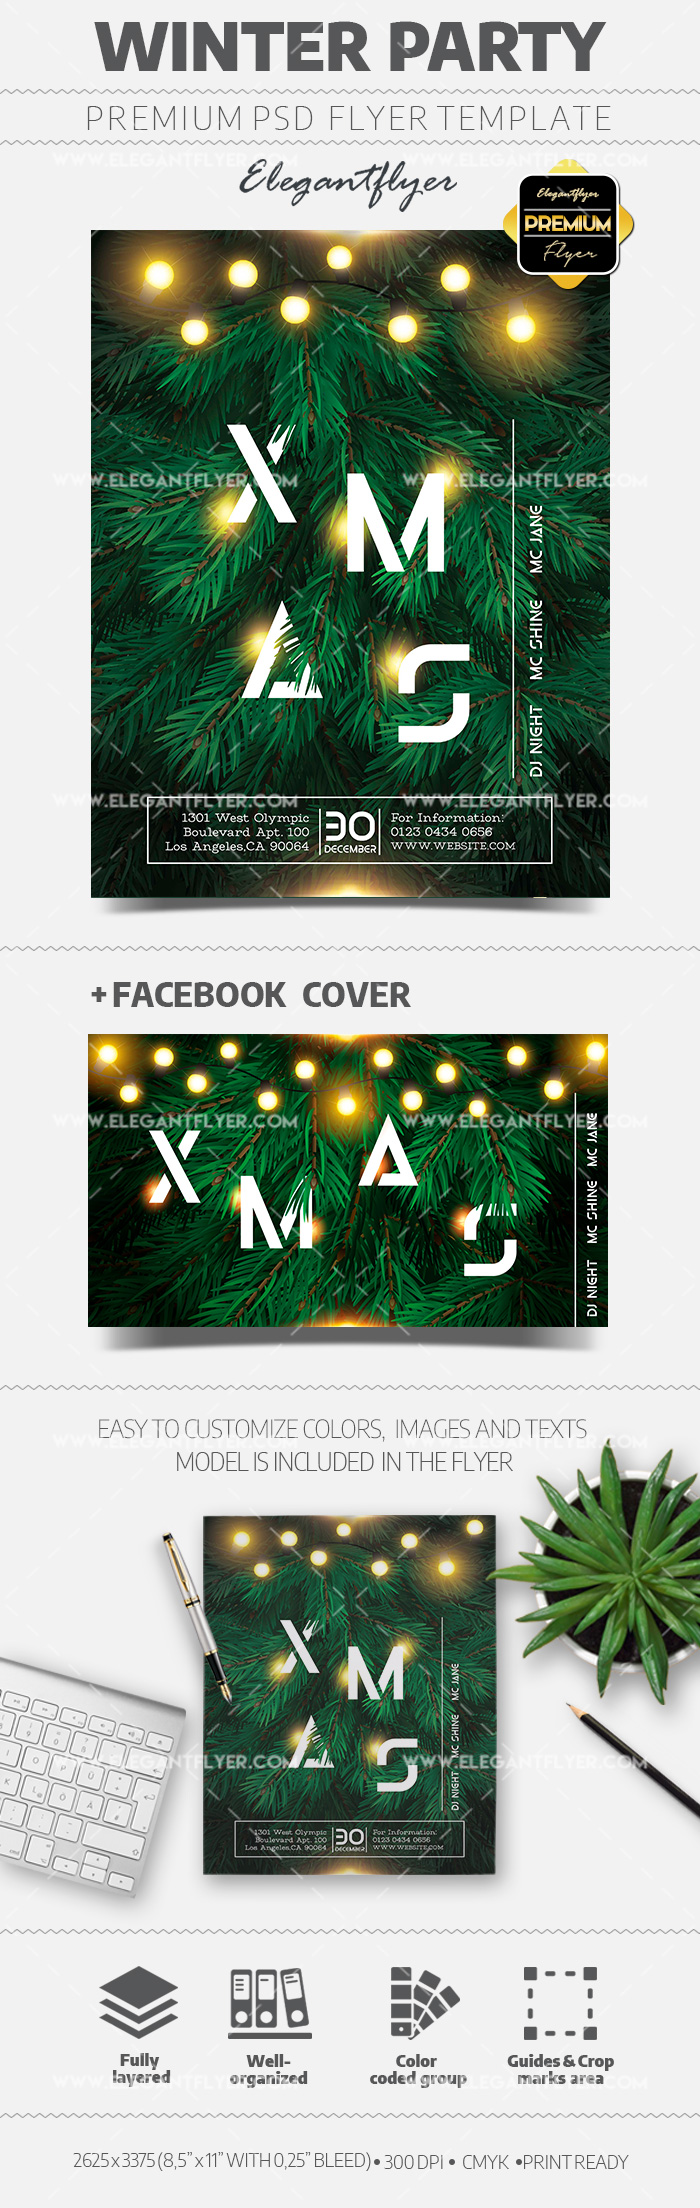 Winter Party Flyer PSD Template